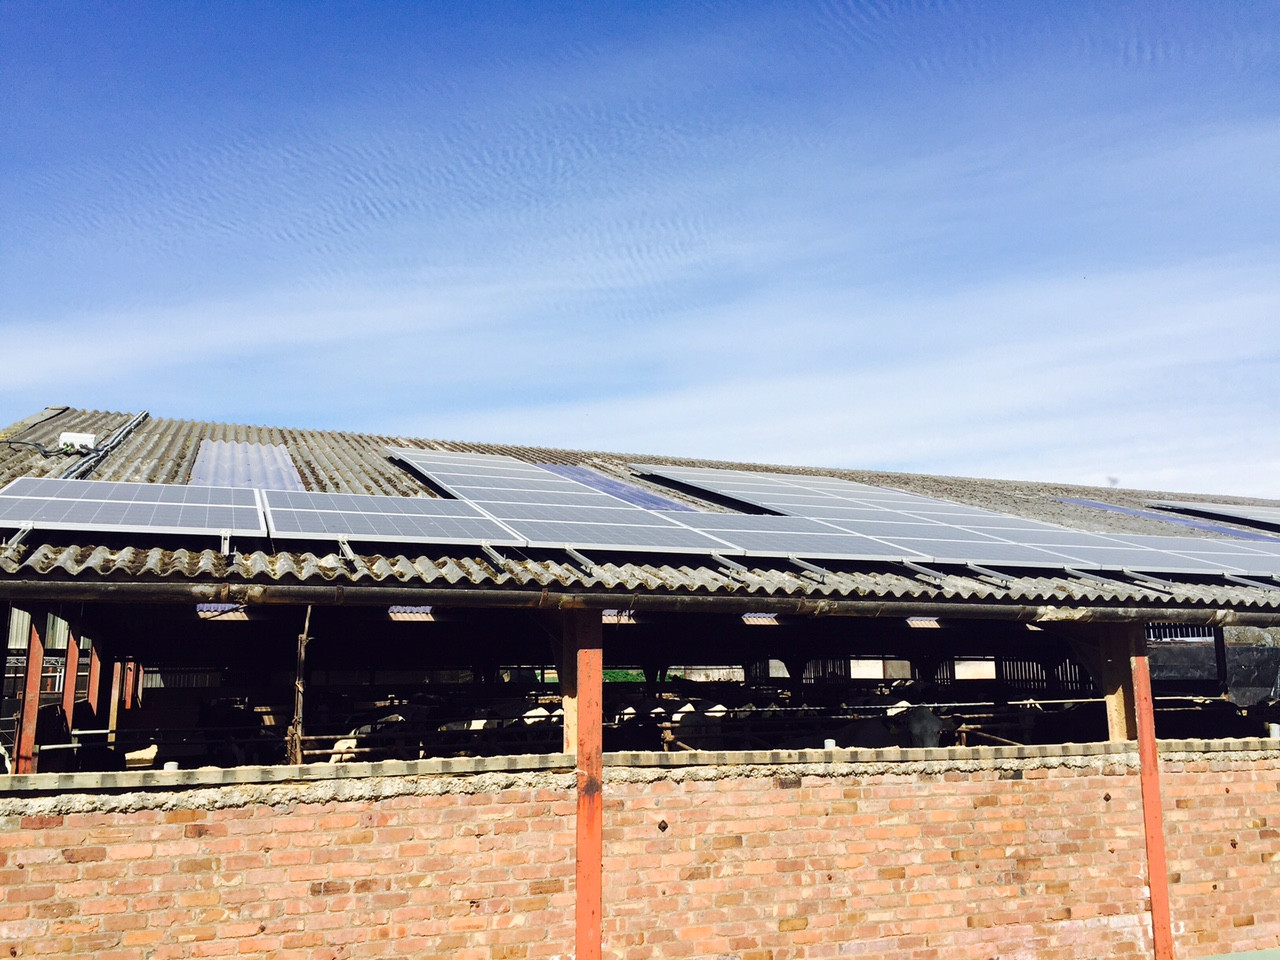 30kWp - Mr. Dodd, Dodleston Hall Dairy Farm, Cheshire